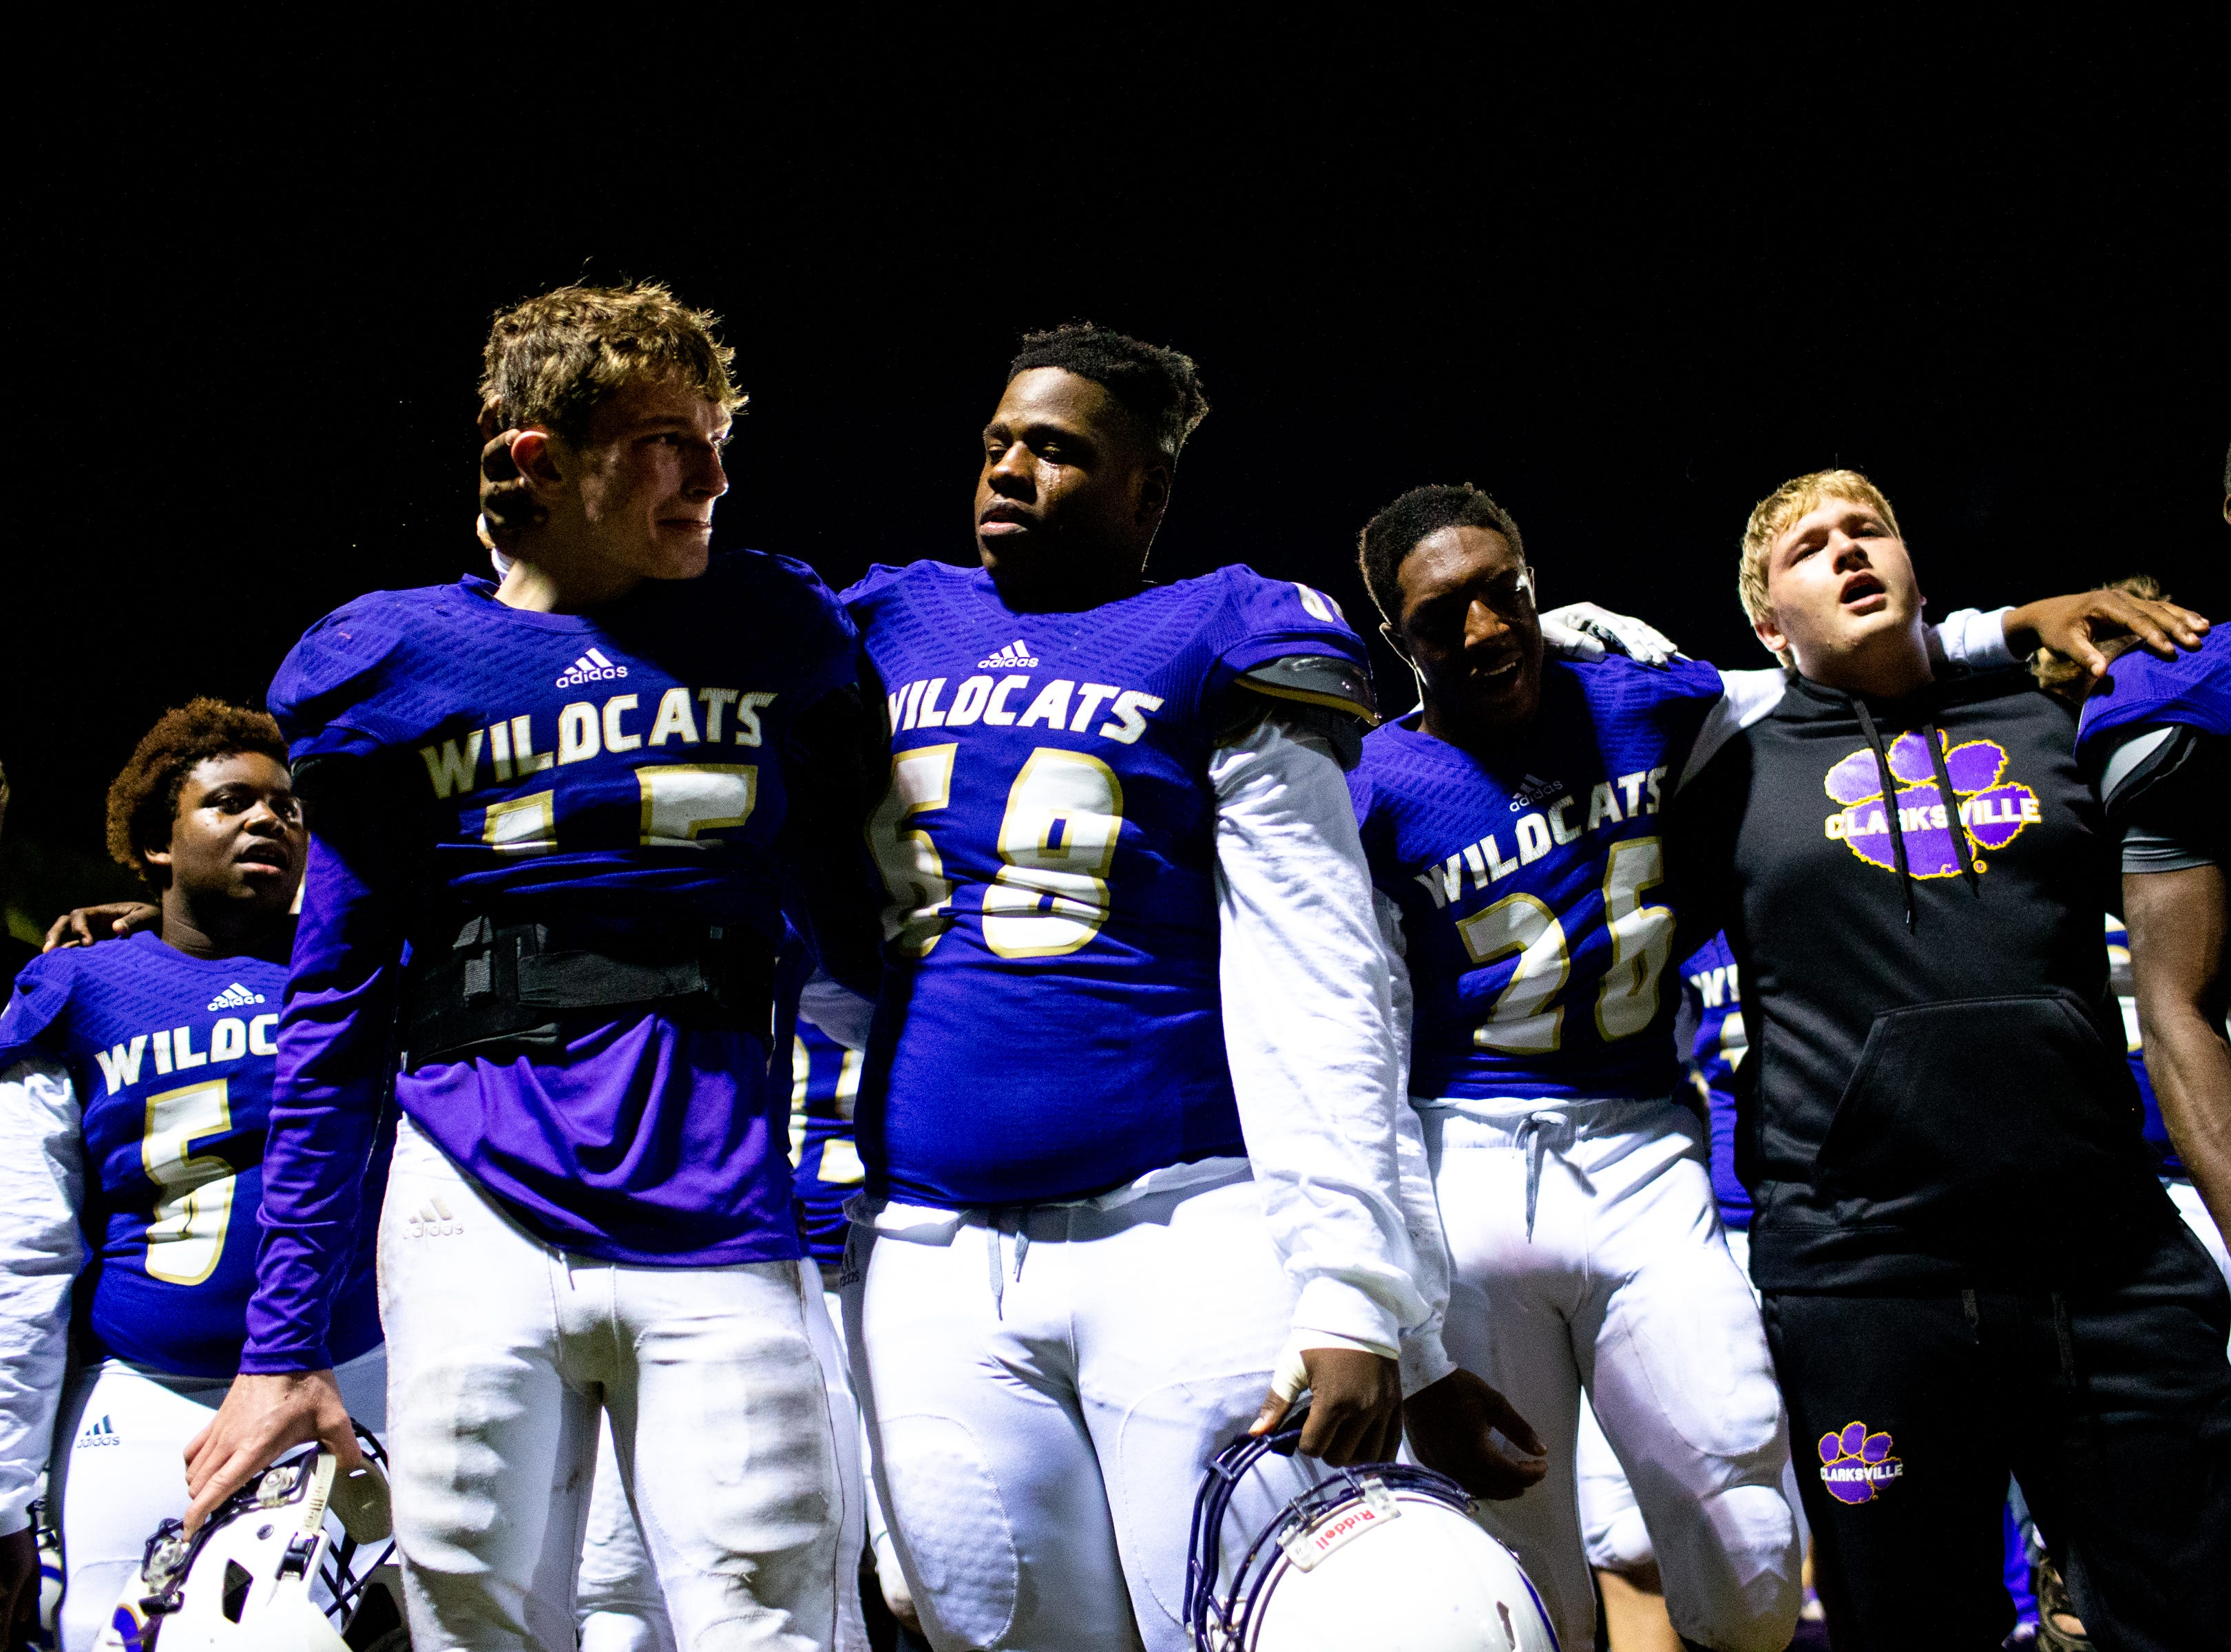 Clarksville High players wrap their arms around each other and sing to the students after losing in overtime at Clarksville High Friday, Nov. 2, 2018, in Clarksville, Tenn.